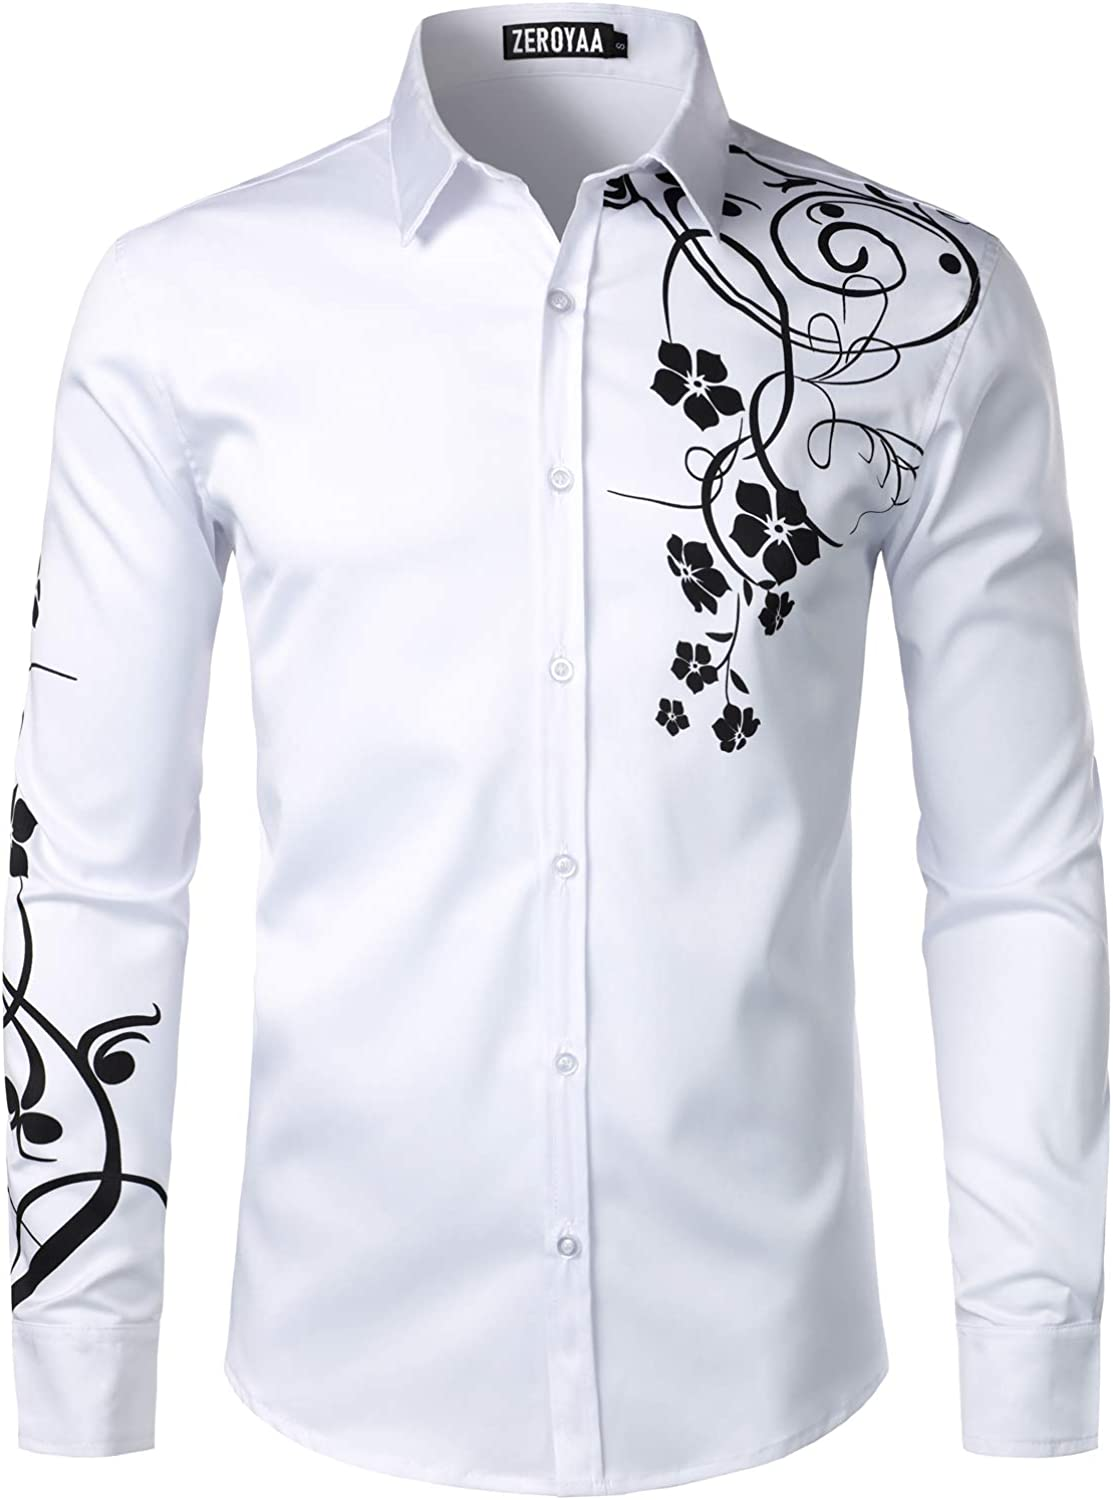 ZEROYAA Men's Hipster Shiny Design Slim Fit Long Sleeve Button Up Party Dress Shirts